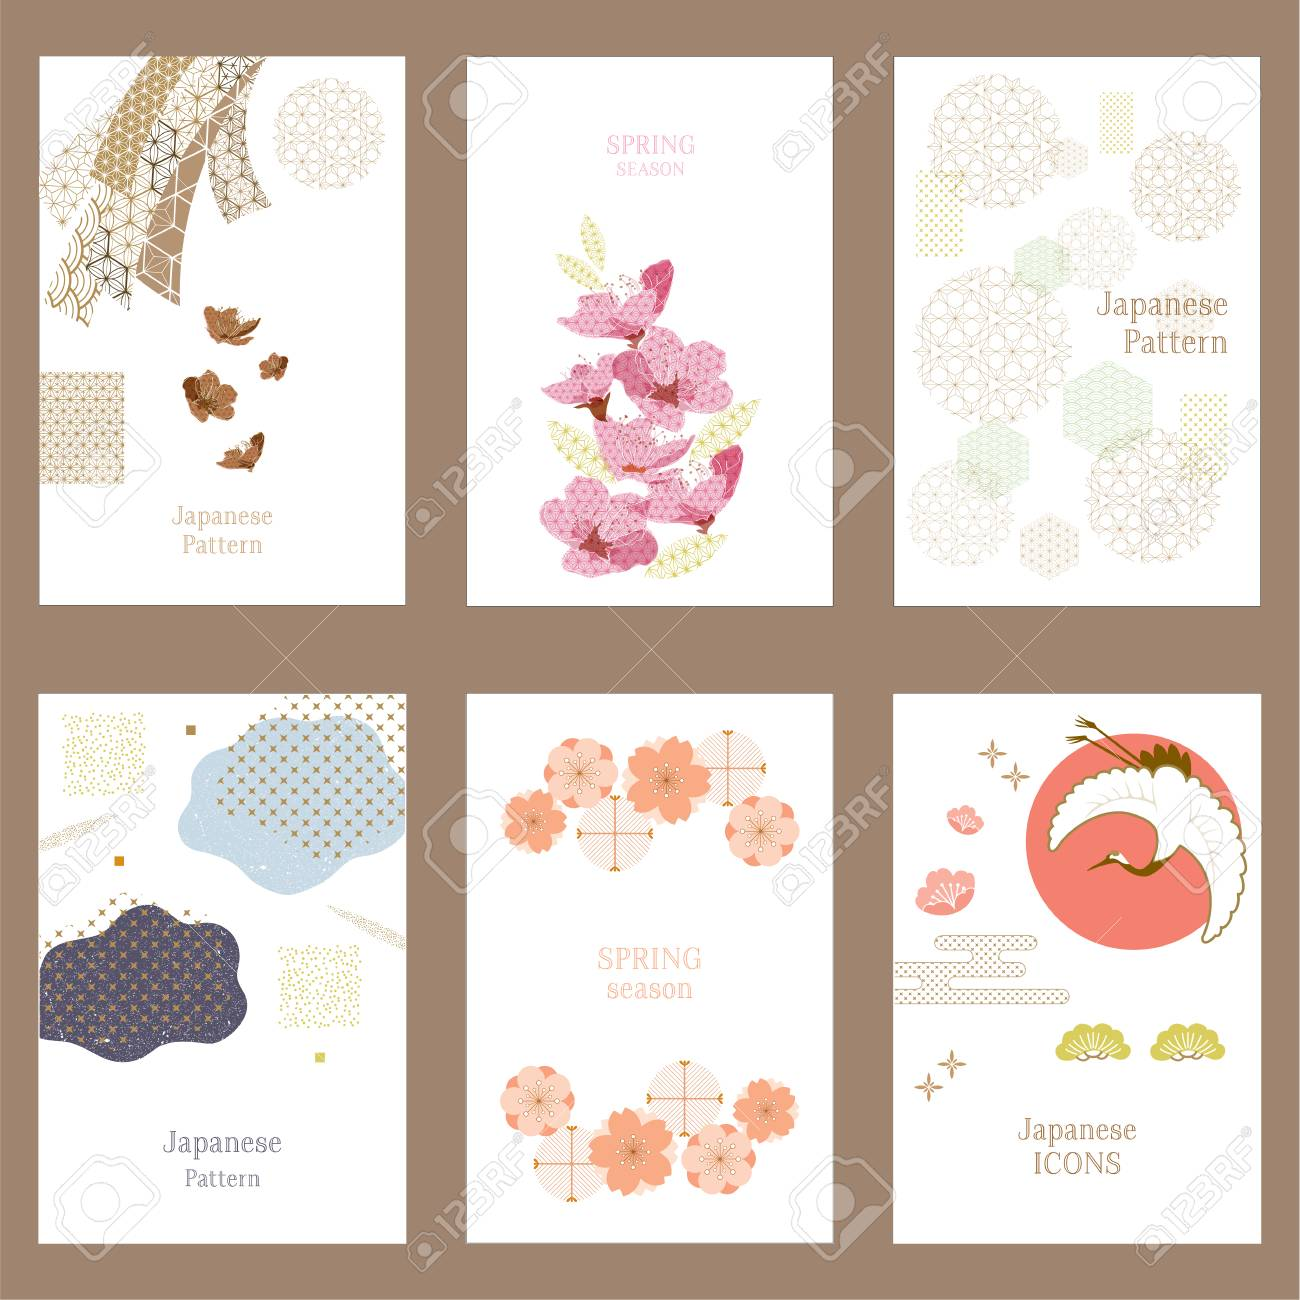 Japanese pattern vector background. Crane, ribbon, cherry blossom elements and icons. - 95361458